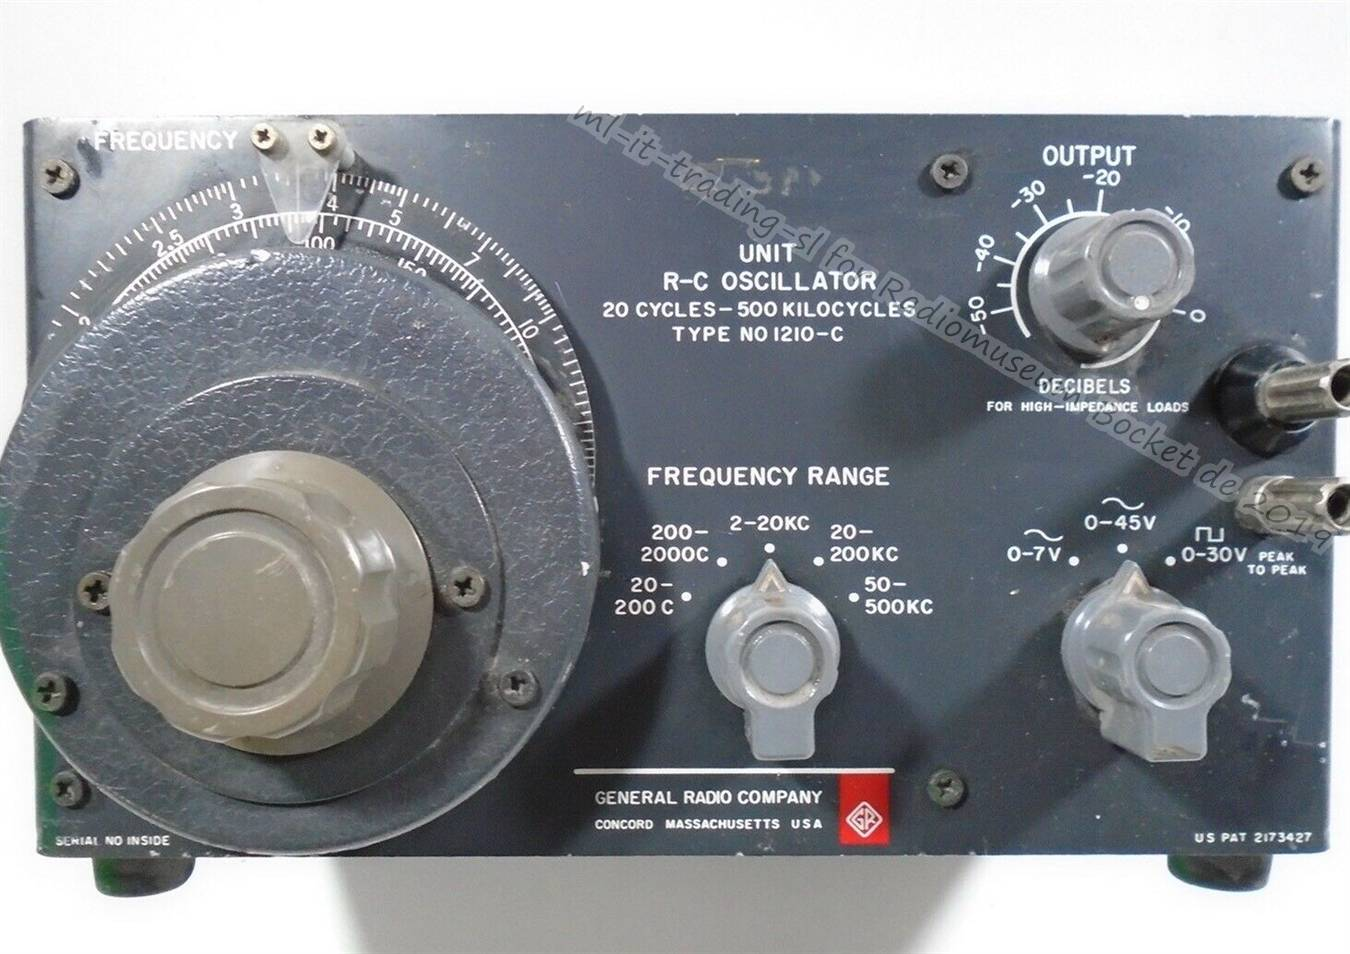 General Radio Unit R-C Oscillator Type NO 1210-C ml-it-trading-sl 2019 1.jpg